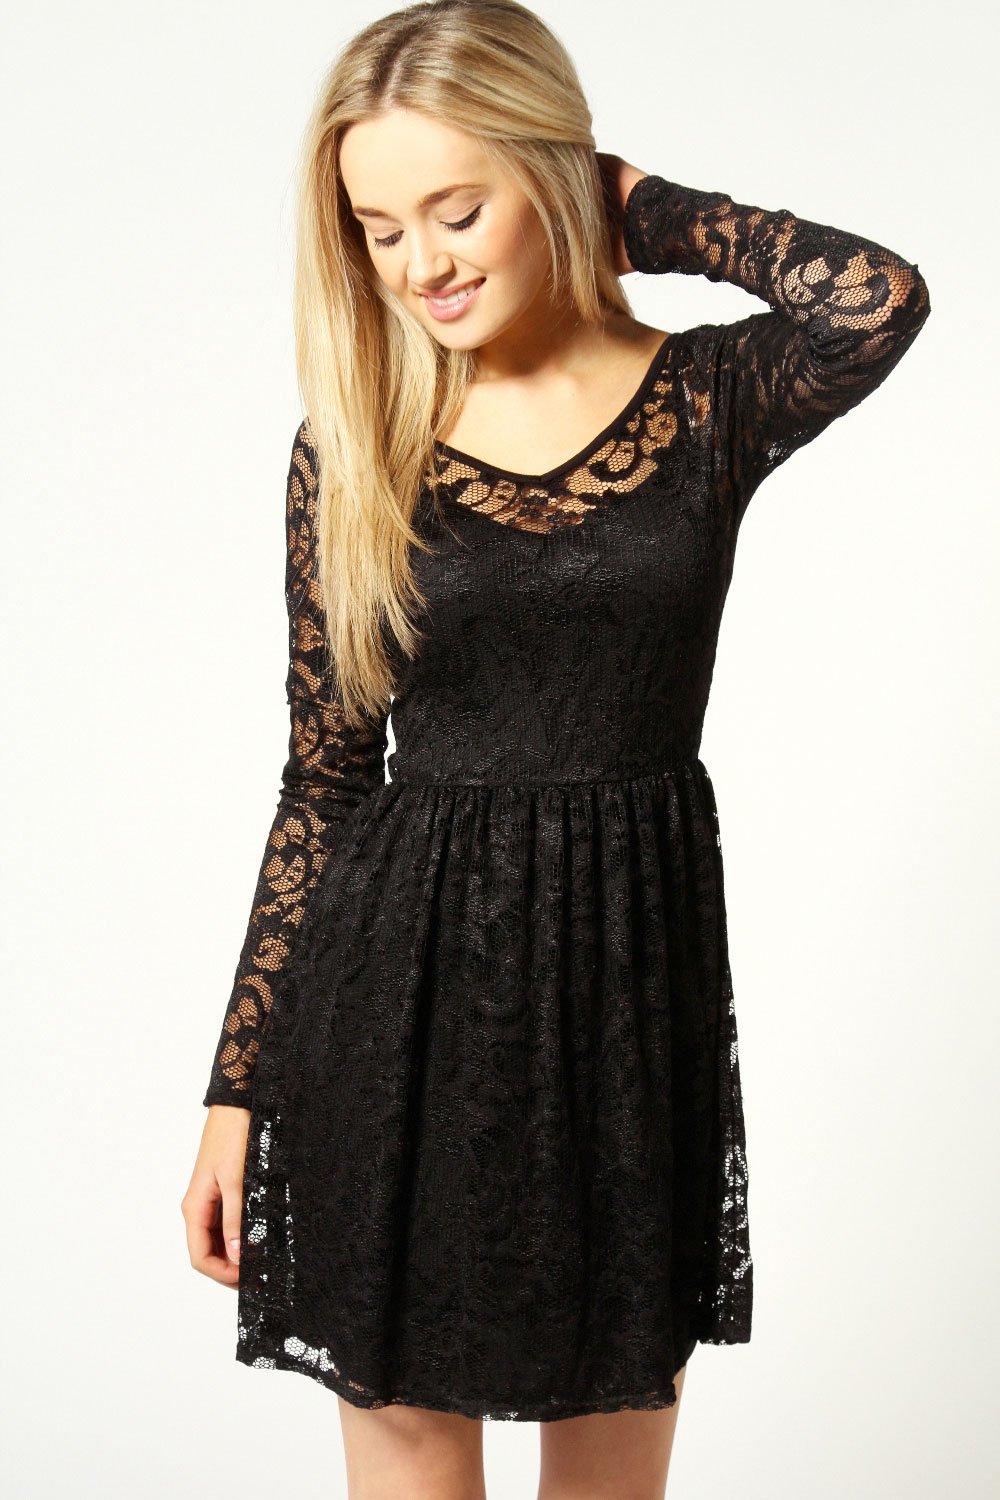 Boohoo Lucy Vneck Long Sleeve Lace Skater Dress  Ebay. Inexpensive Wedding Dresses With Pockets. Girlsgogames Colorful Wedding Dress Up. Southern Wedding Bridesmaid Dresses. Modest Wedding Dresses Alabama. Lazaro Wedding Dresses 2016. Modern Off The Shoulder Wedding Gowns. Wedding Dresses For Short Curvy Brides. Cheap Wedding Dresses Oahu